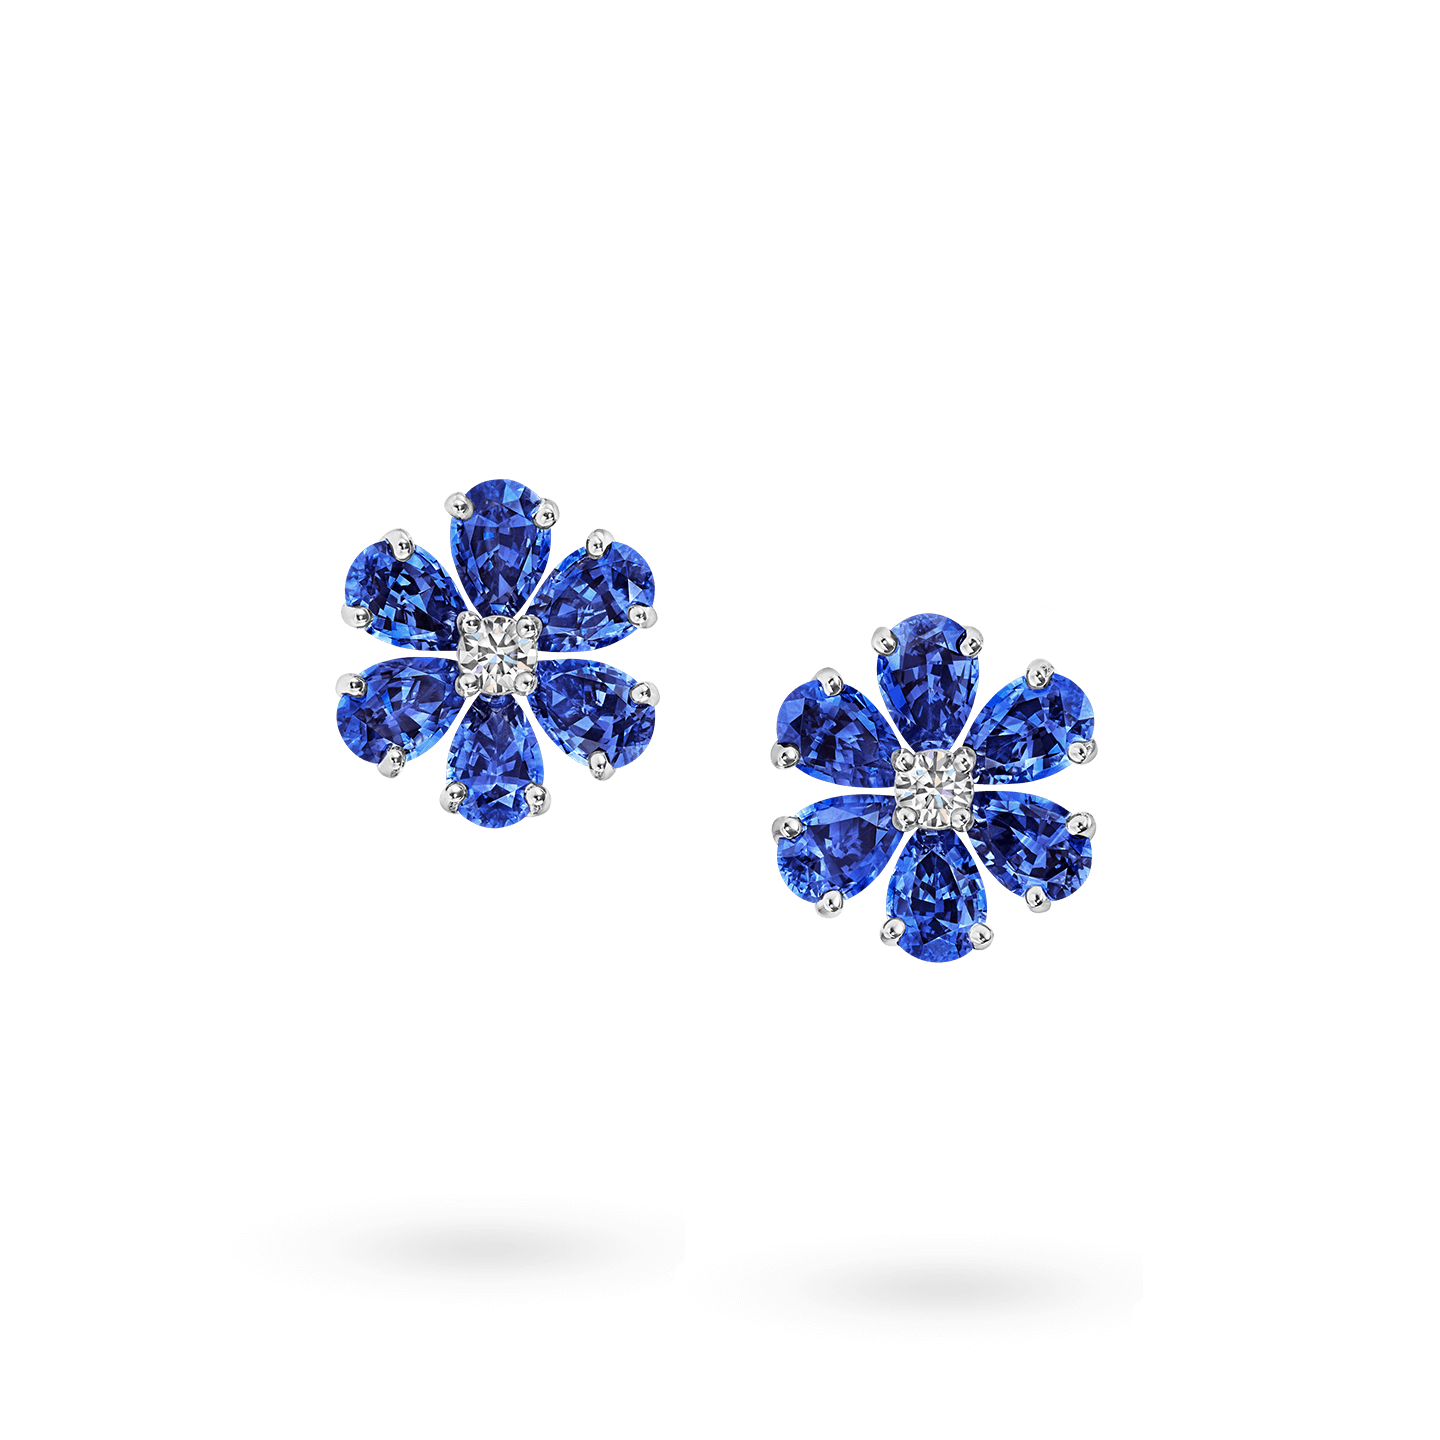 Forget-Me-Not Sapphire and Diamond Earrings, Product Image 1